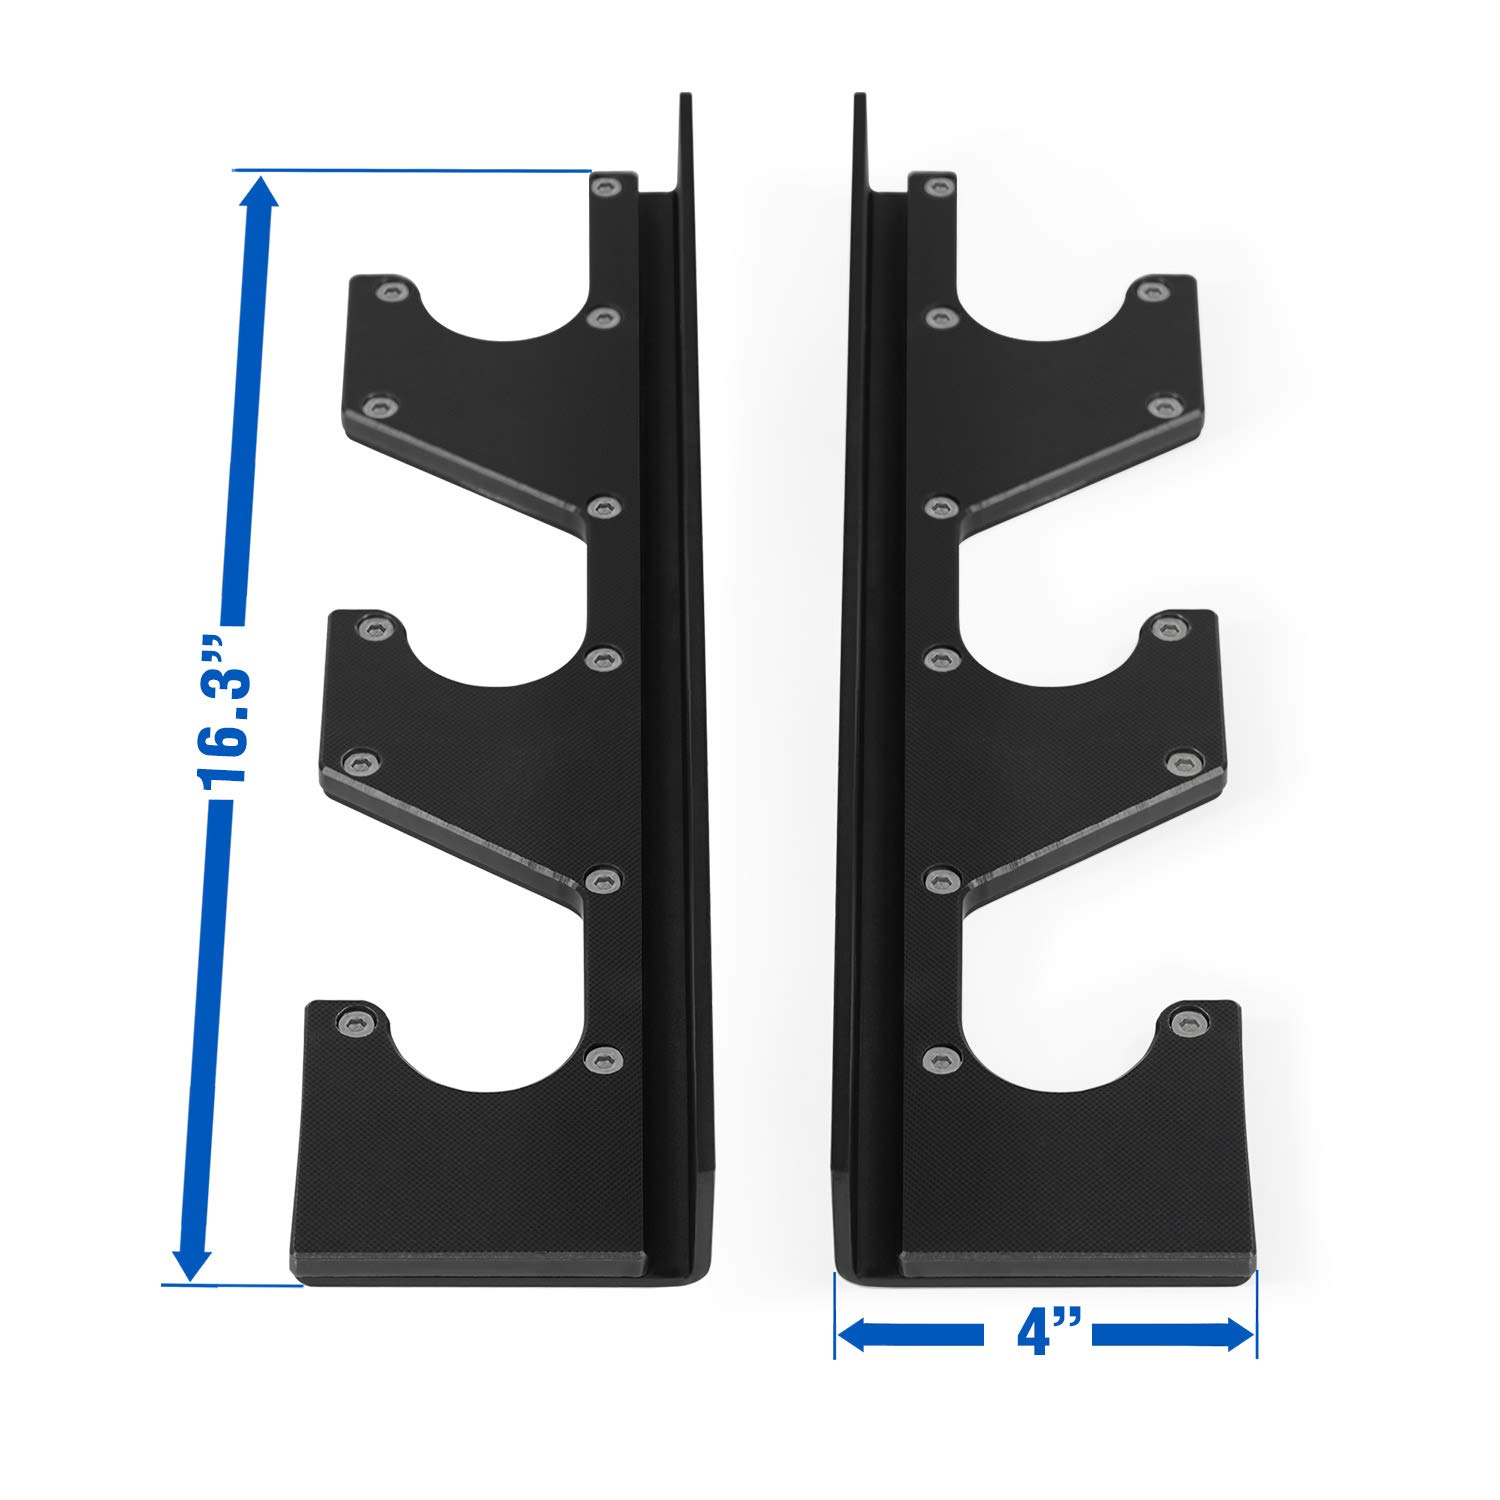 Yes4All Horizontal Wall Mounted Olympic Barbell Rack, 3 Bar or 6 Bar Options Pair